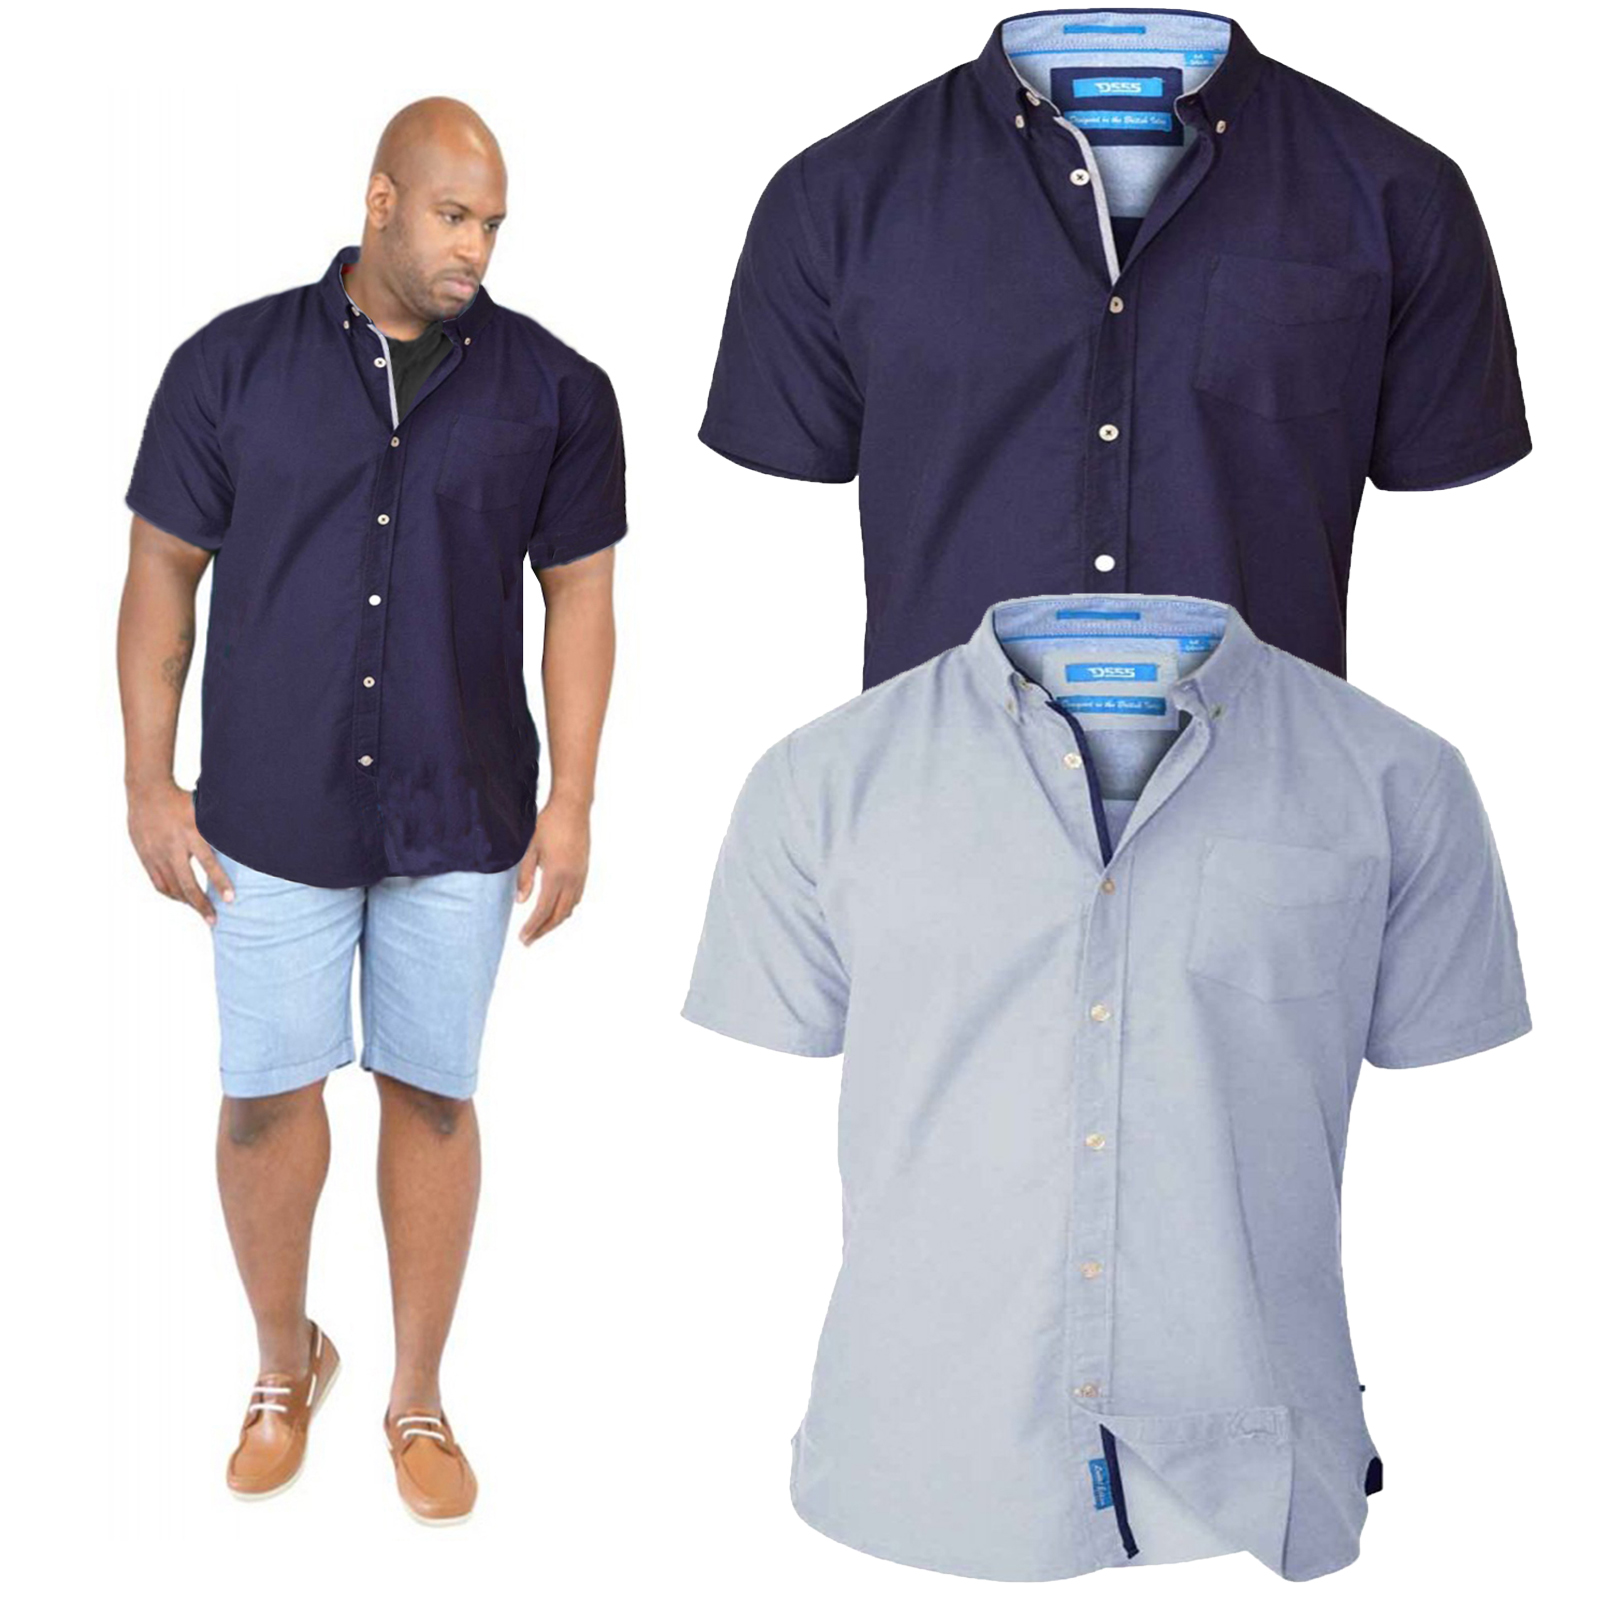 Kingsize Big & Tall stock International and top brand names. Whether you purchase Board shorts and T shirts or Large size Business shirts, you need to know that you have the ability to return goods that do not fit. Kingsize Big & Tall have a money back Guarantee, so you know you can buy with confidence.